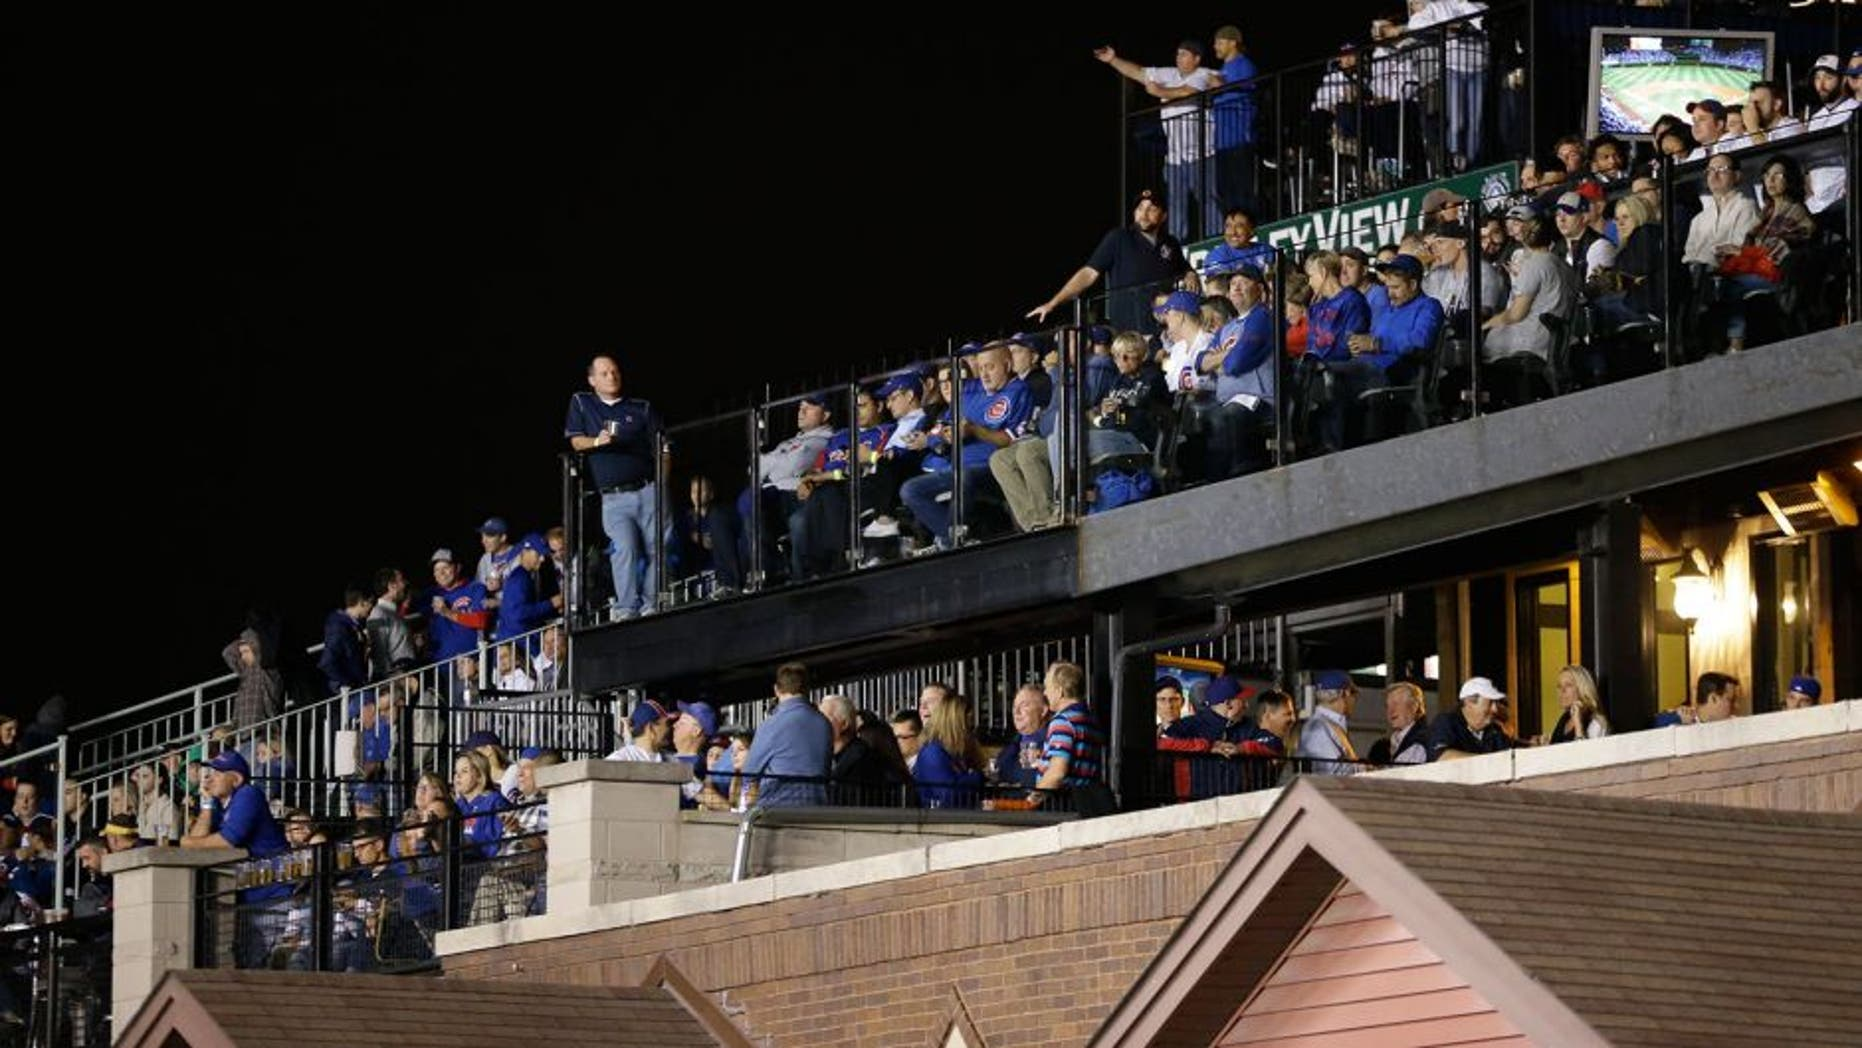 In this Oct. 20, 2015 photo, fans watch Game 3 of the National League baseball championship series between the Chicago Cubs and the New York Mets in Chicago, from the rooftop deck across the street beyond Wrigley Field's ivy-covered wall. With the massive Jumbotron now standing between the rooftop bleachers and the field, the 2015 postseason is the first for the Cubs since the team sliced into the views from the rooftops - one of the fabled experiences at this venerable old ballpark, and one in serious danger of going away for good. (AP Photo/David Goldman)